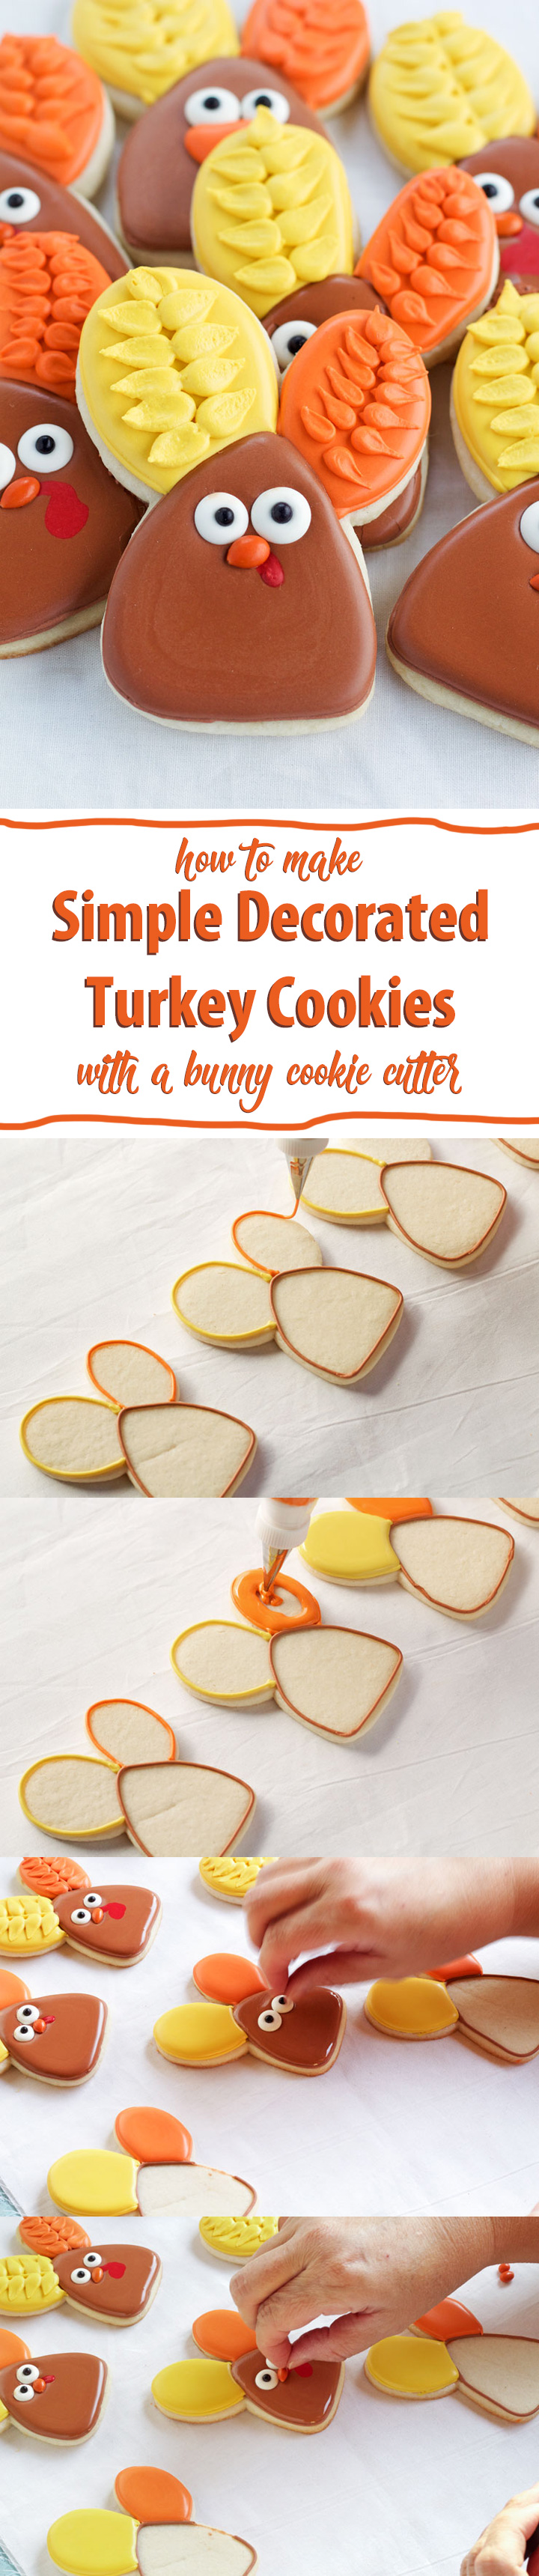 Decorated Turkey Cookies made with a Bunny Cutter | The Bearfoot Baker